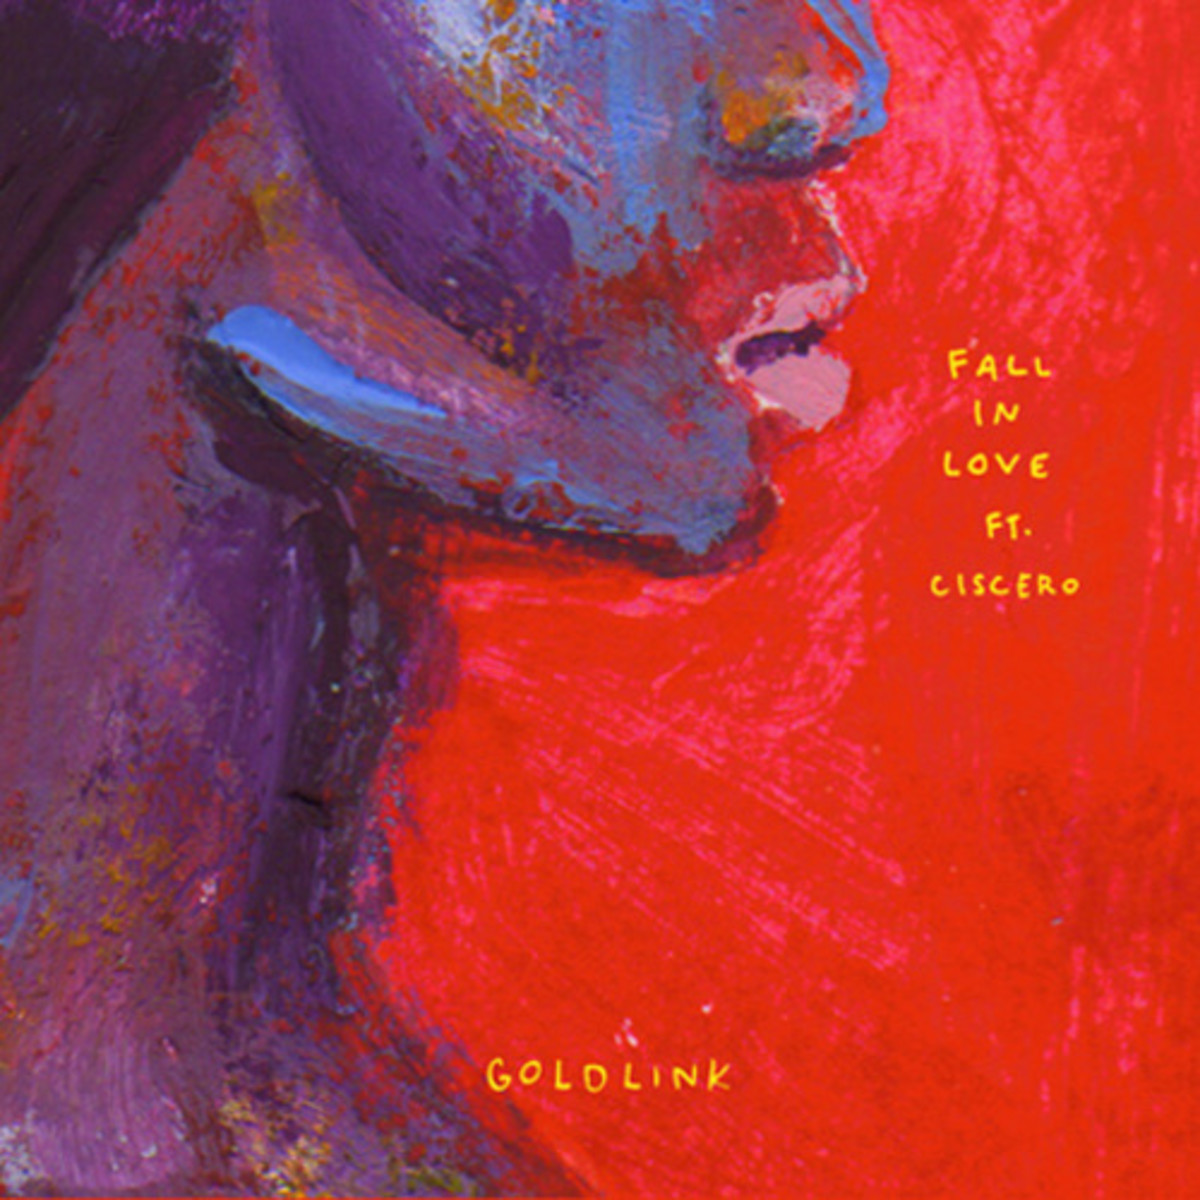 goldlink-fall-in-love.jpg